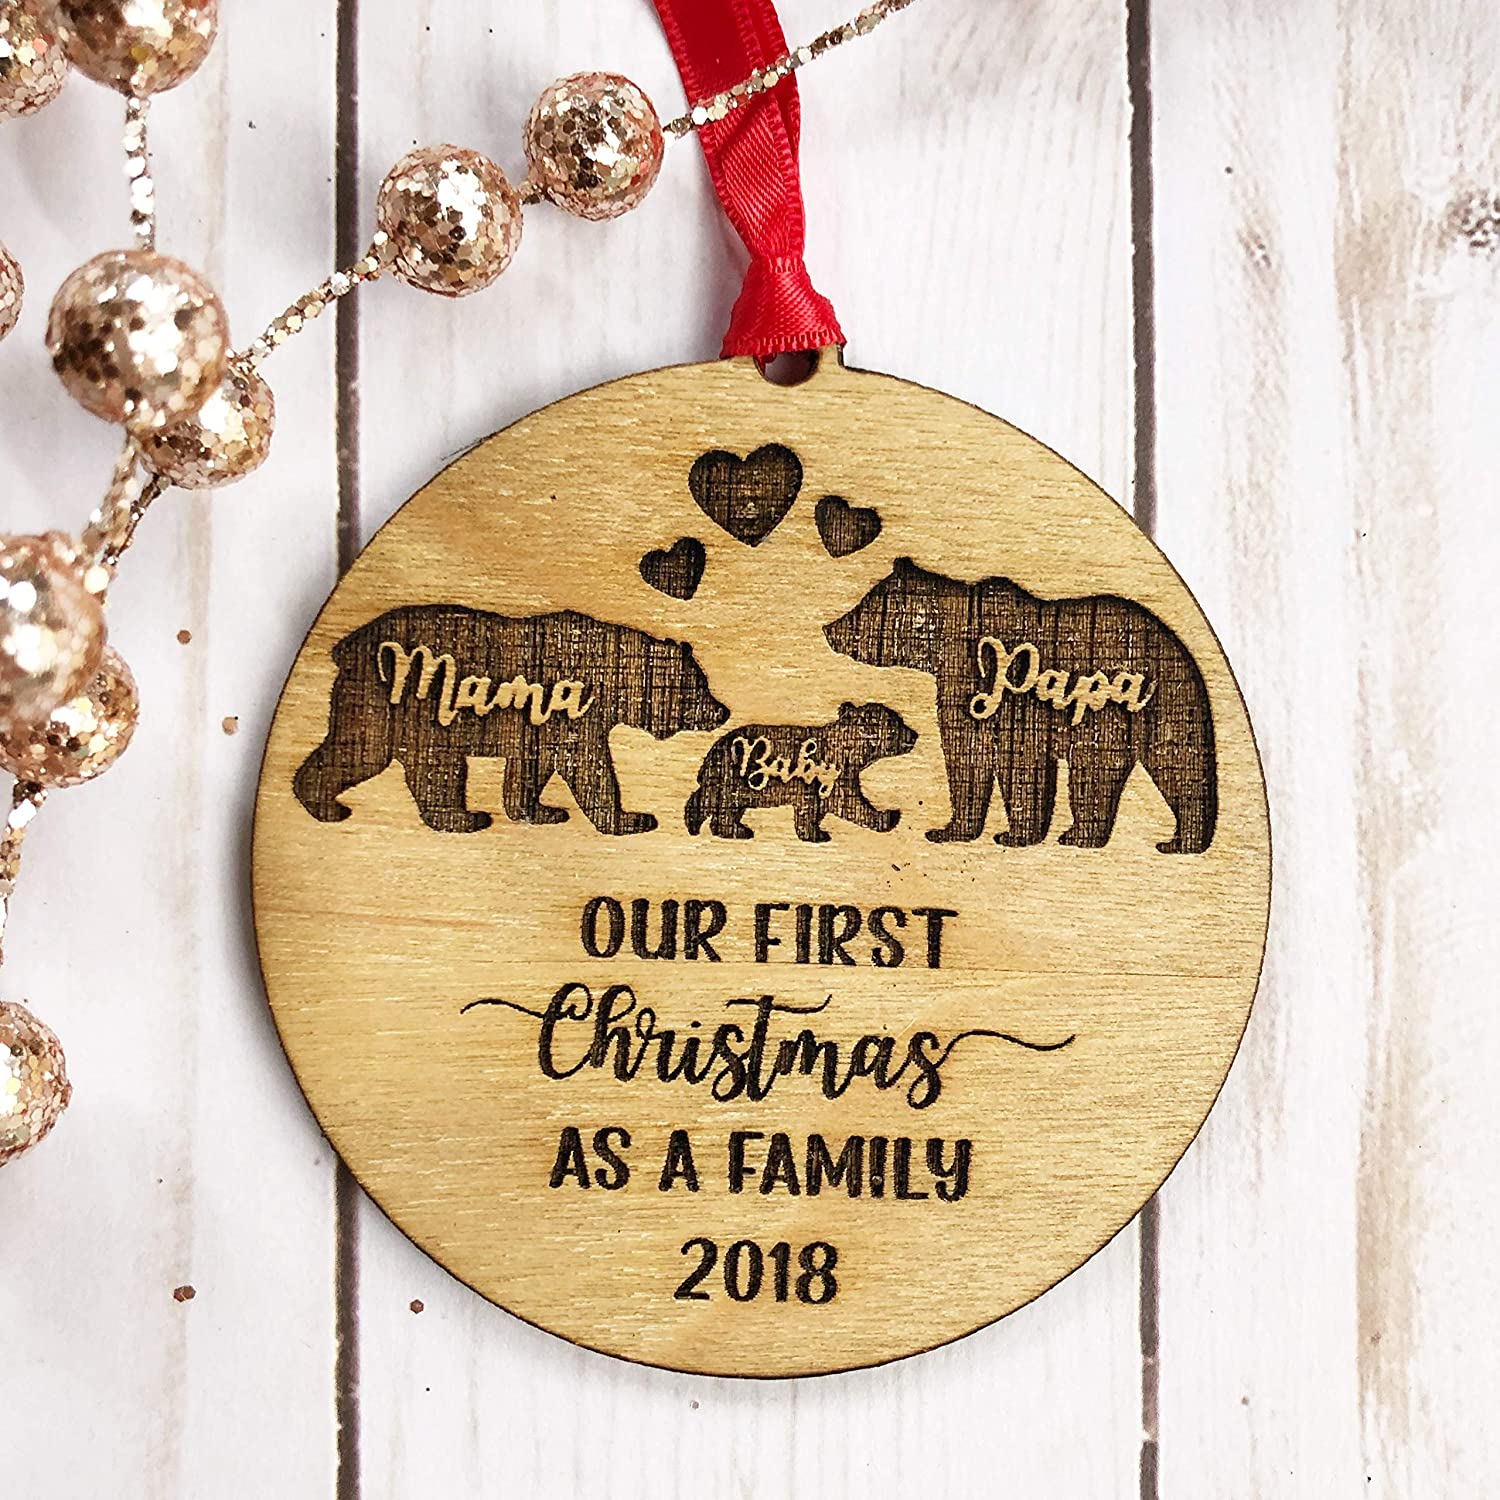 Mama Papa Baby Bear Christmas Ornament Our First Christmas as a Family 2018 Rustic Wooden Wood Engraved Ornament